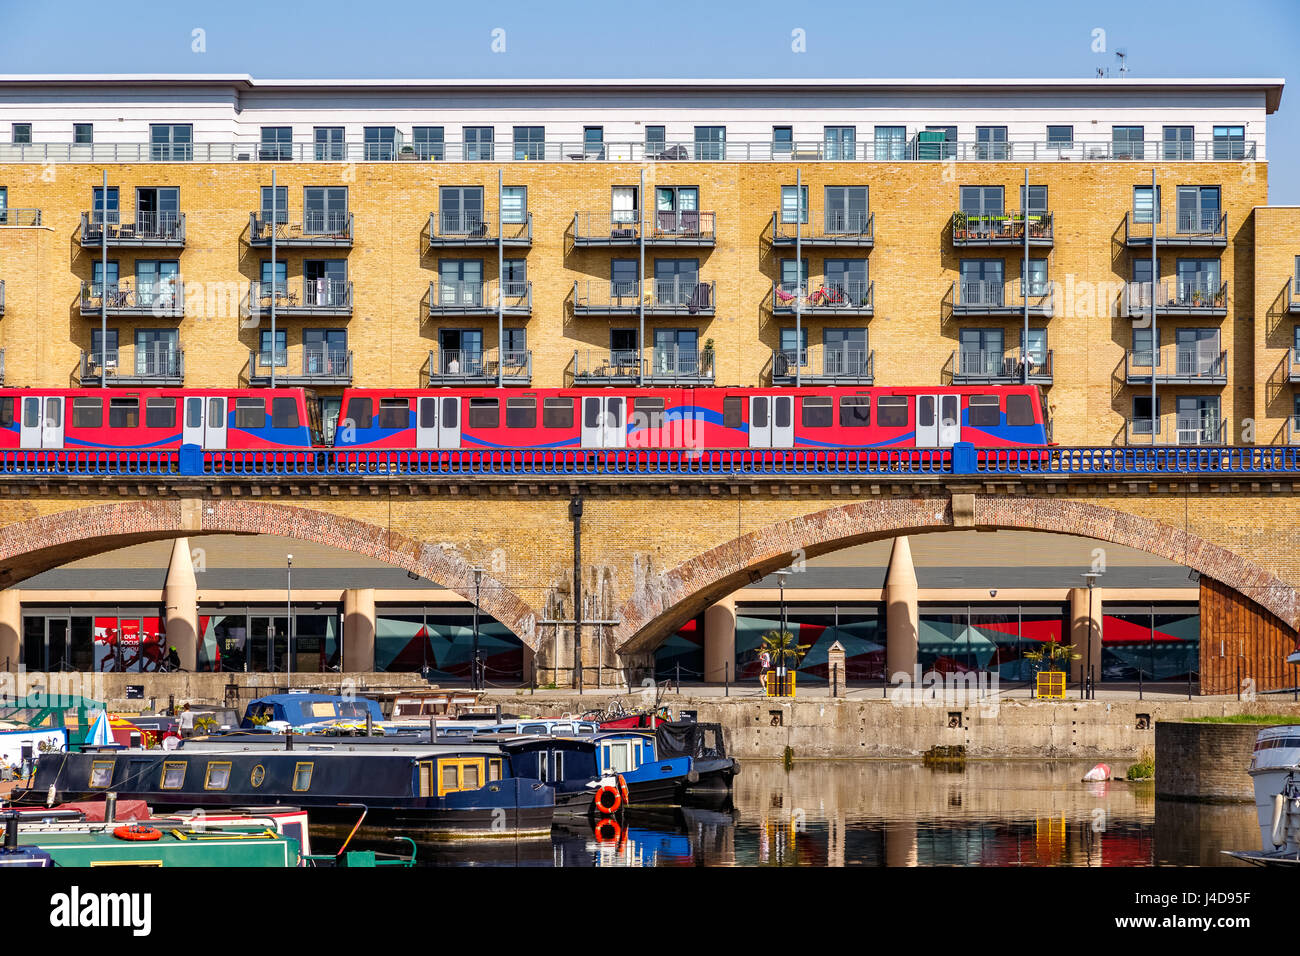 Waterside apartments at Limehouse Basin Marina in London with Docklands Light Railway passing by - Stock Image